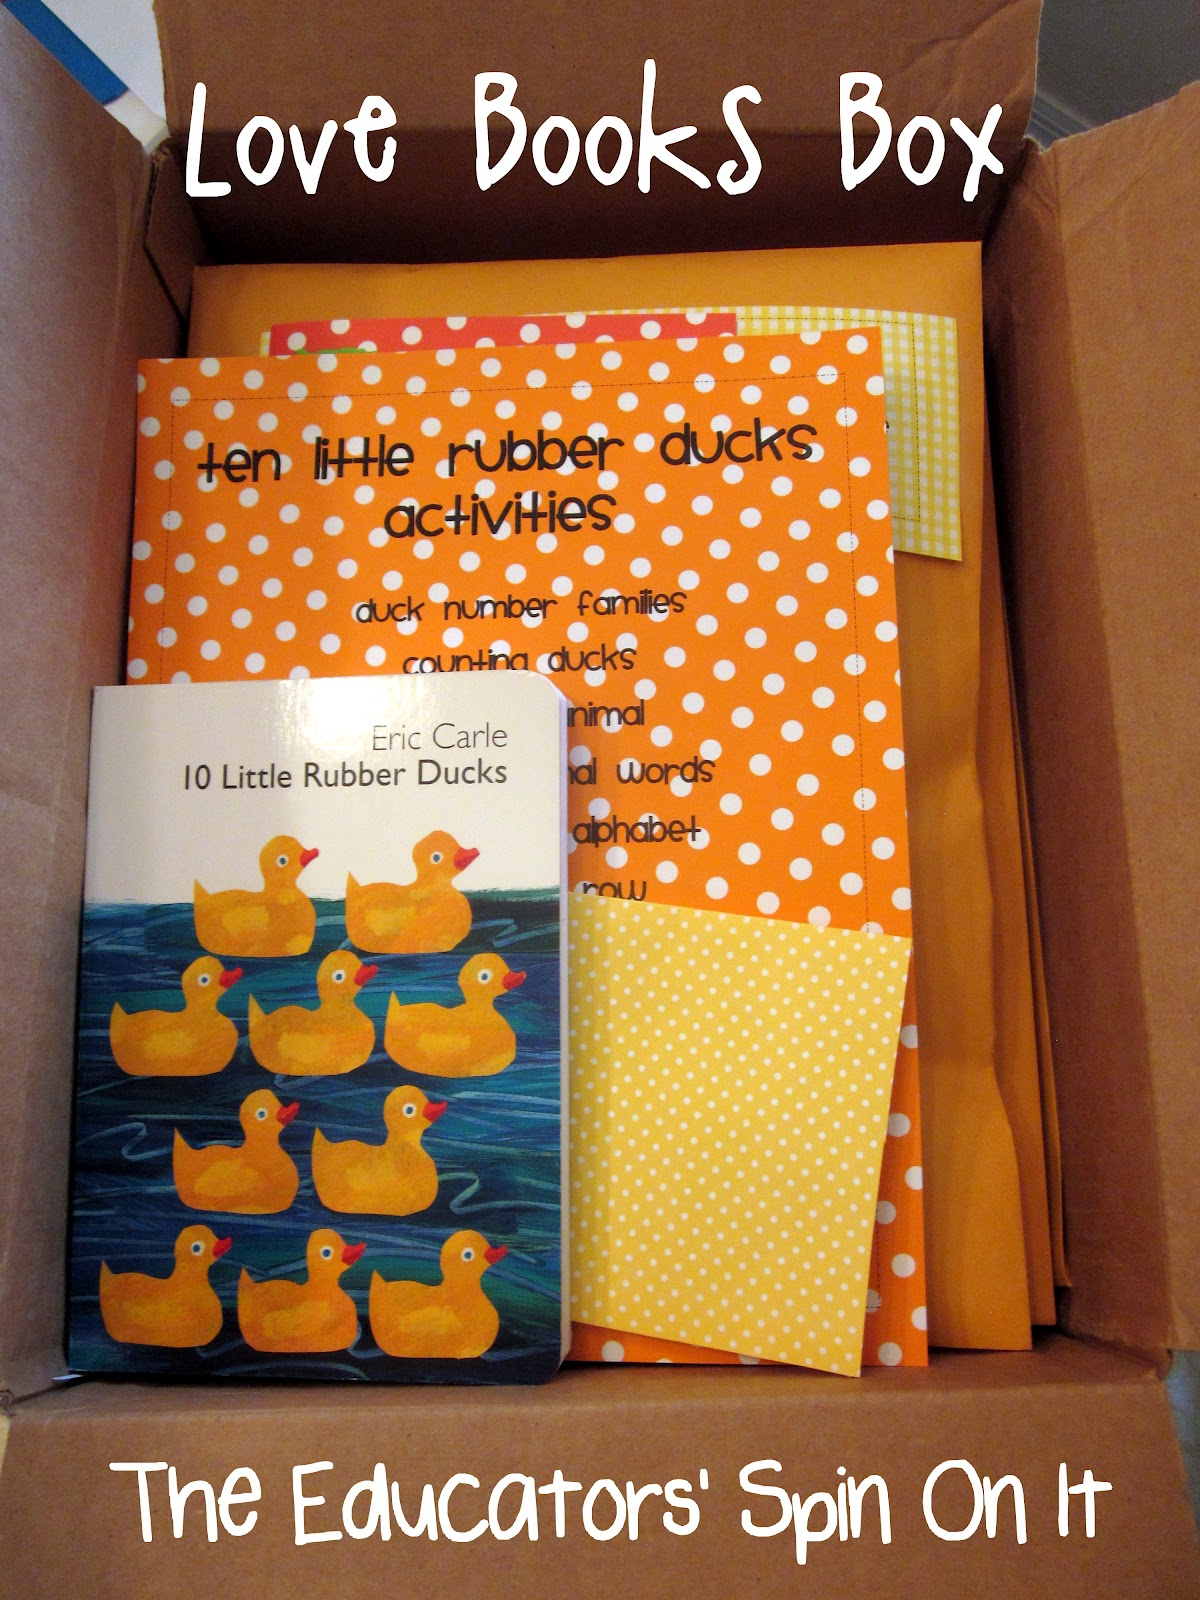 Ten Little Rubber Ducks Activities